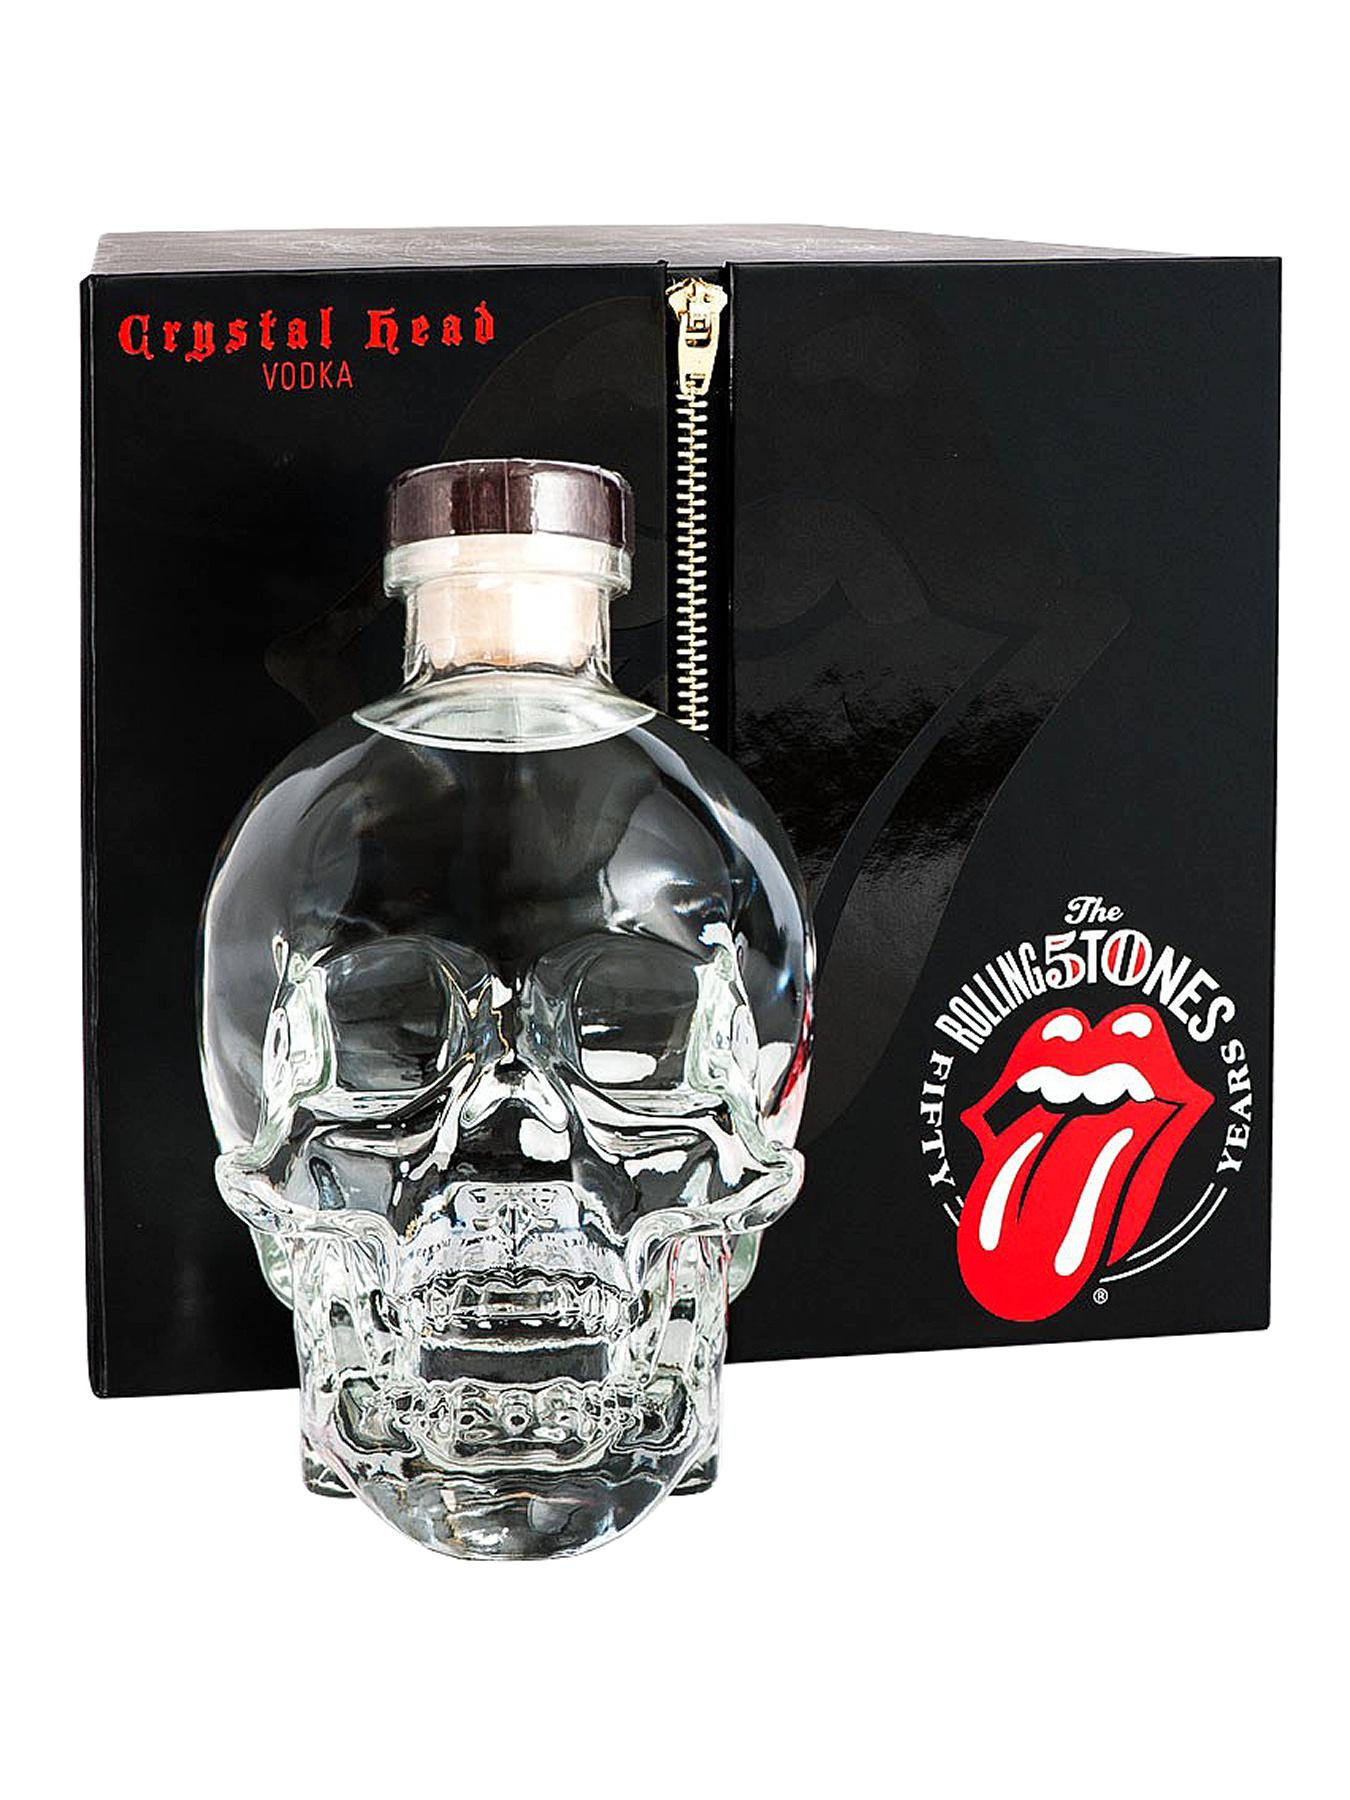 Crystal Head Vodka - Limited Edition Rolling Stones Pack